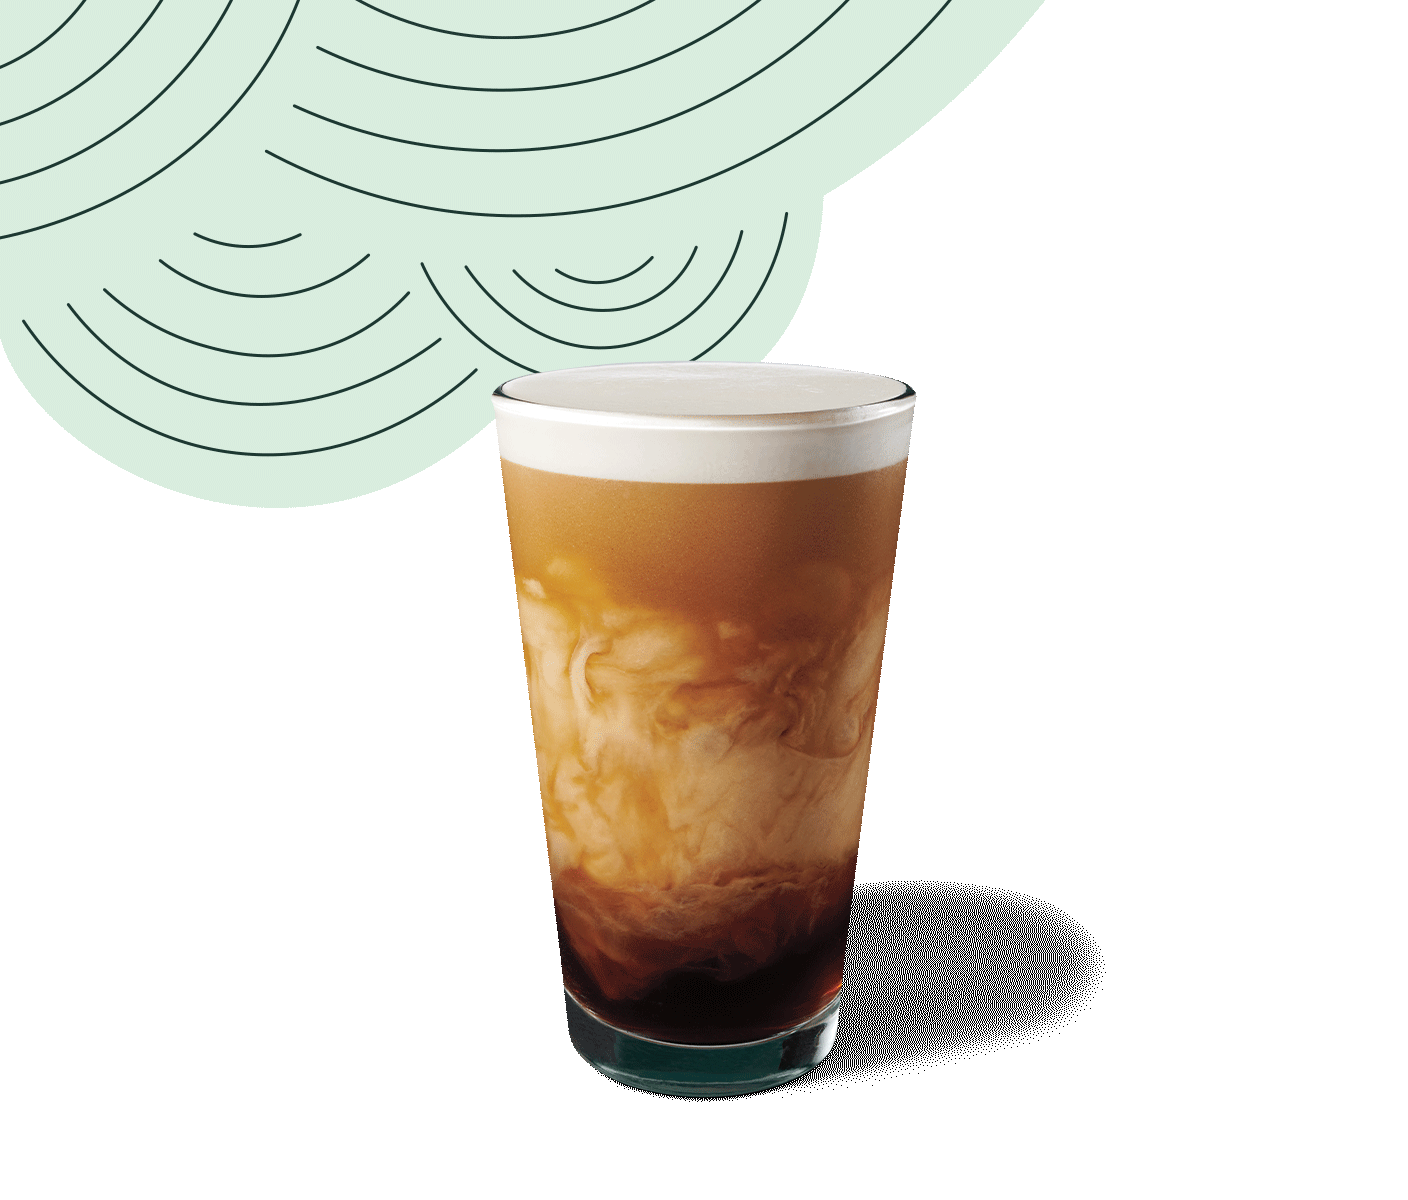 Glass of Nitro Cold Brew with Sweet Cream.